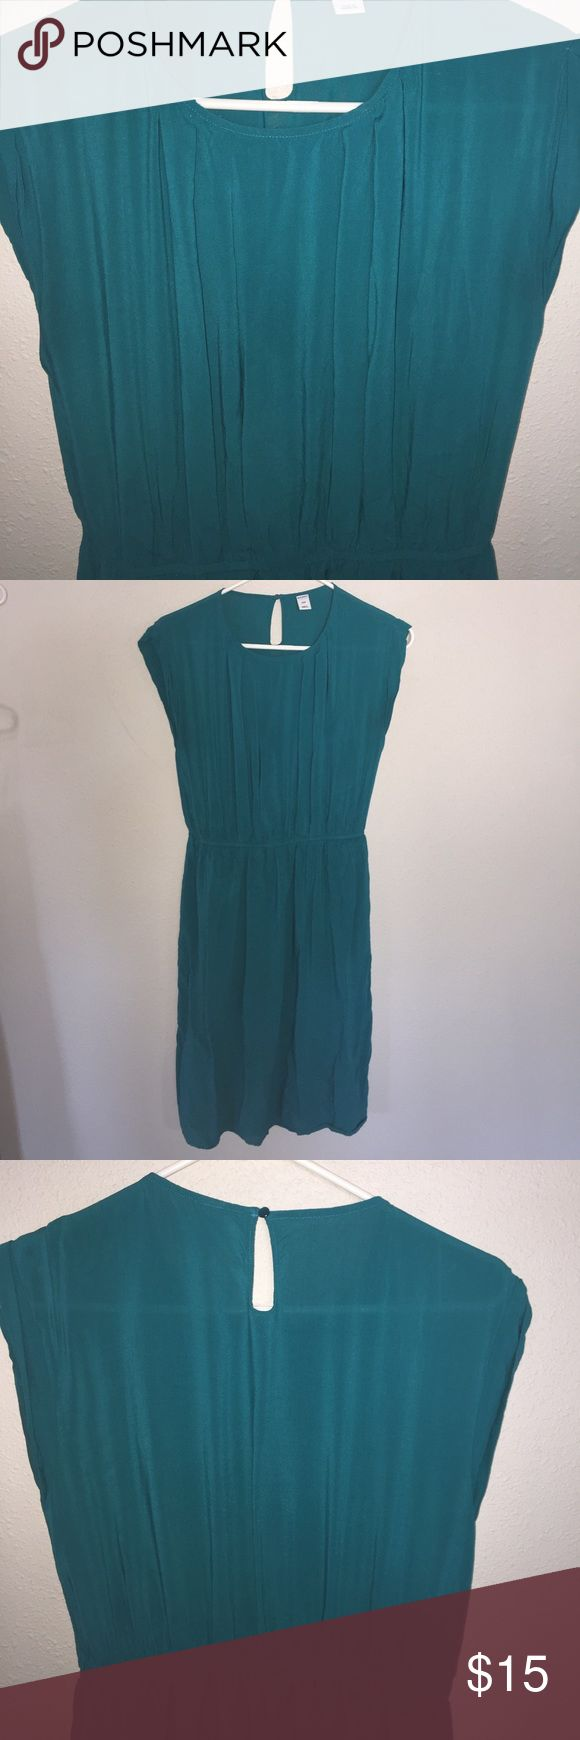 Teal modest dress for work or church Old Navy modest dress for family dinner, church or work. Soft like washed silk and lined skirt! Great condition please see pictures for details. Looks great with a belt and coral necklace! Tag says small but fits a medium great! Old Navy Dresses